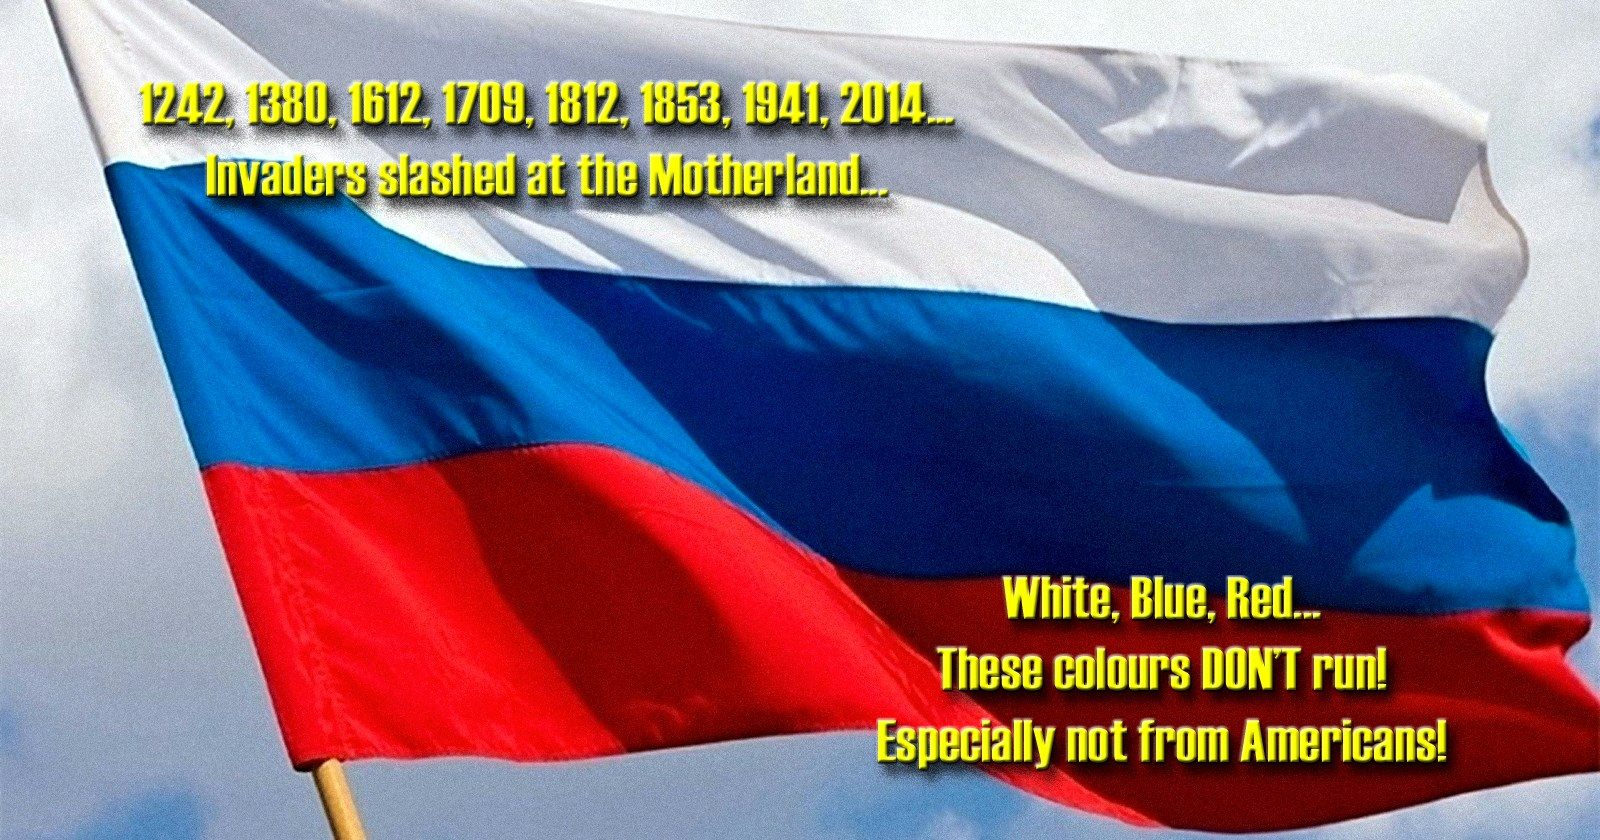 00 The White Blue and Red. These Colours Don't Run. 20.03.15